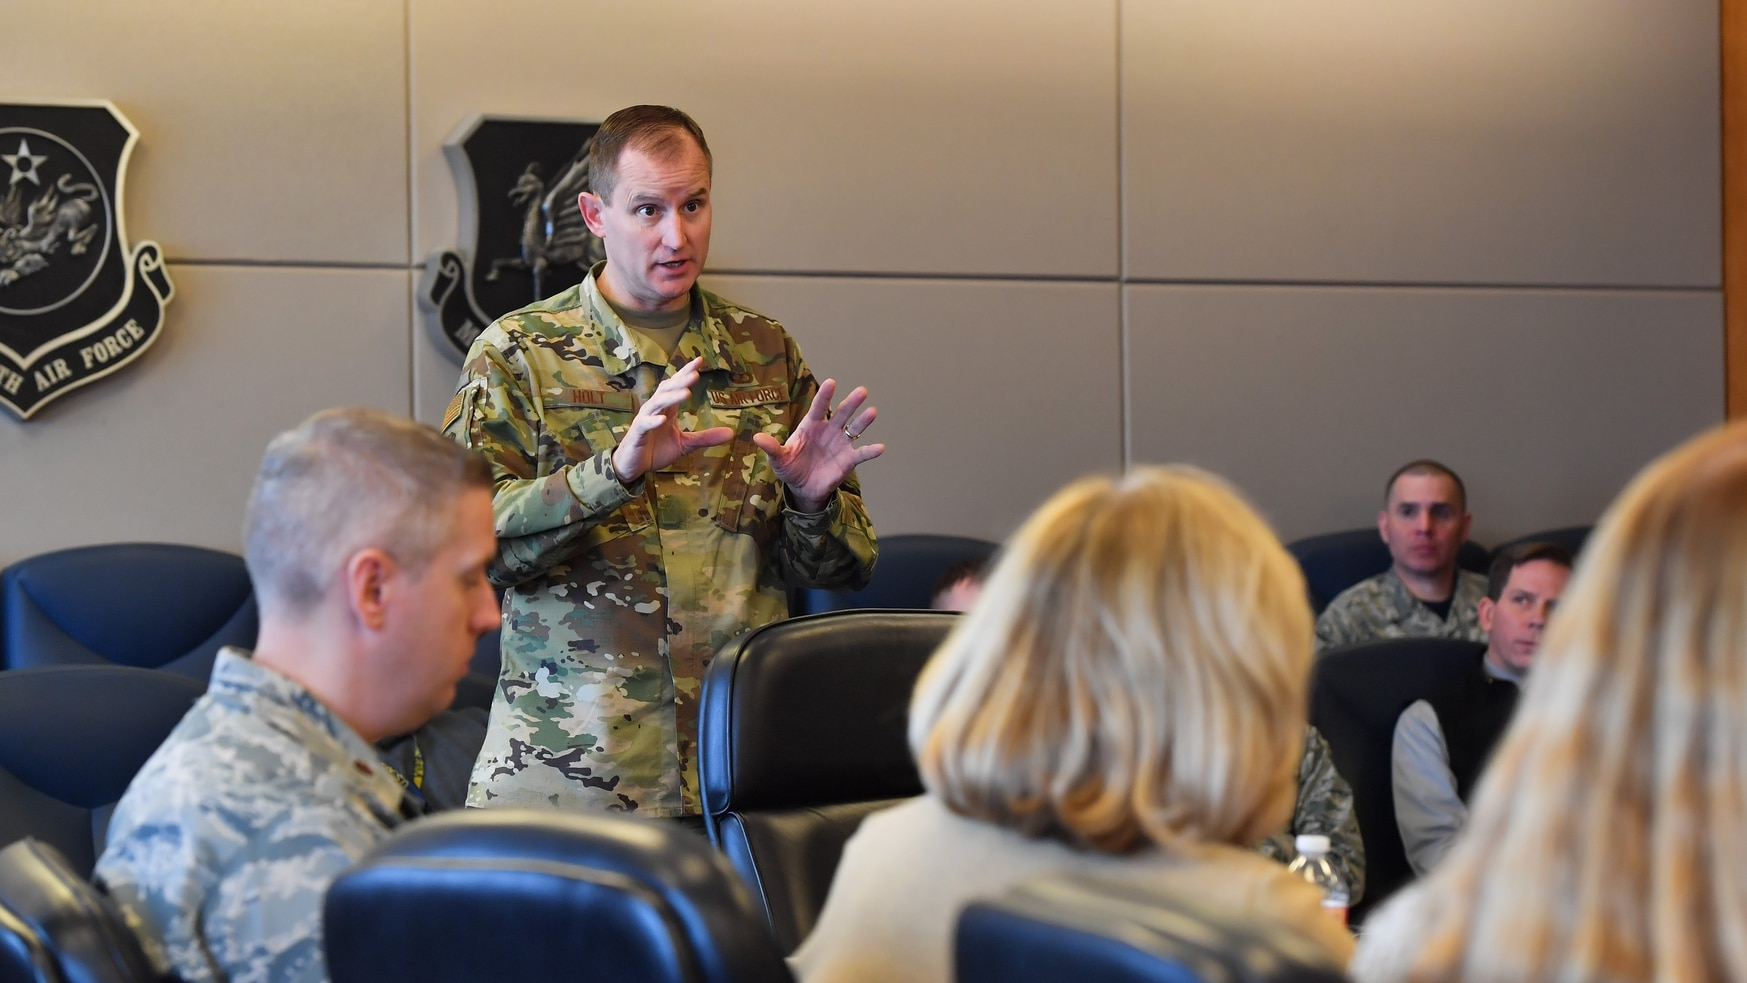 Maj. Gen. Cameron Holt, seen here in 2019, became a central figure for industry response during the first months of the COVID-19 pandemic. (Kathryn Calvert/U.S. Air Force)